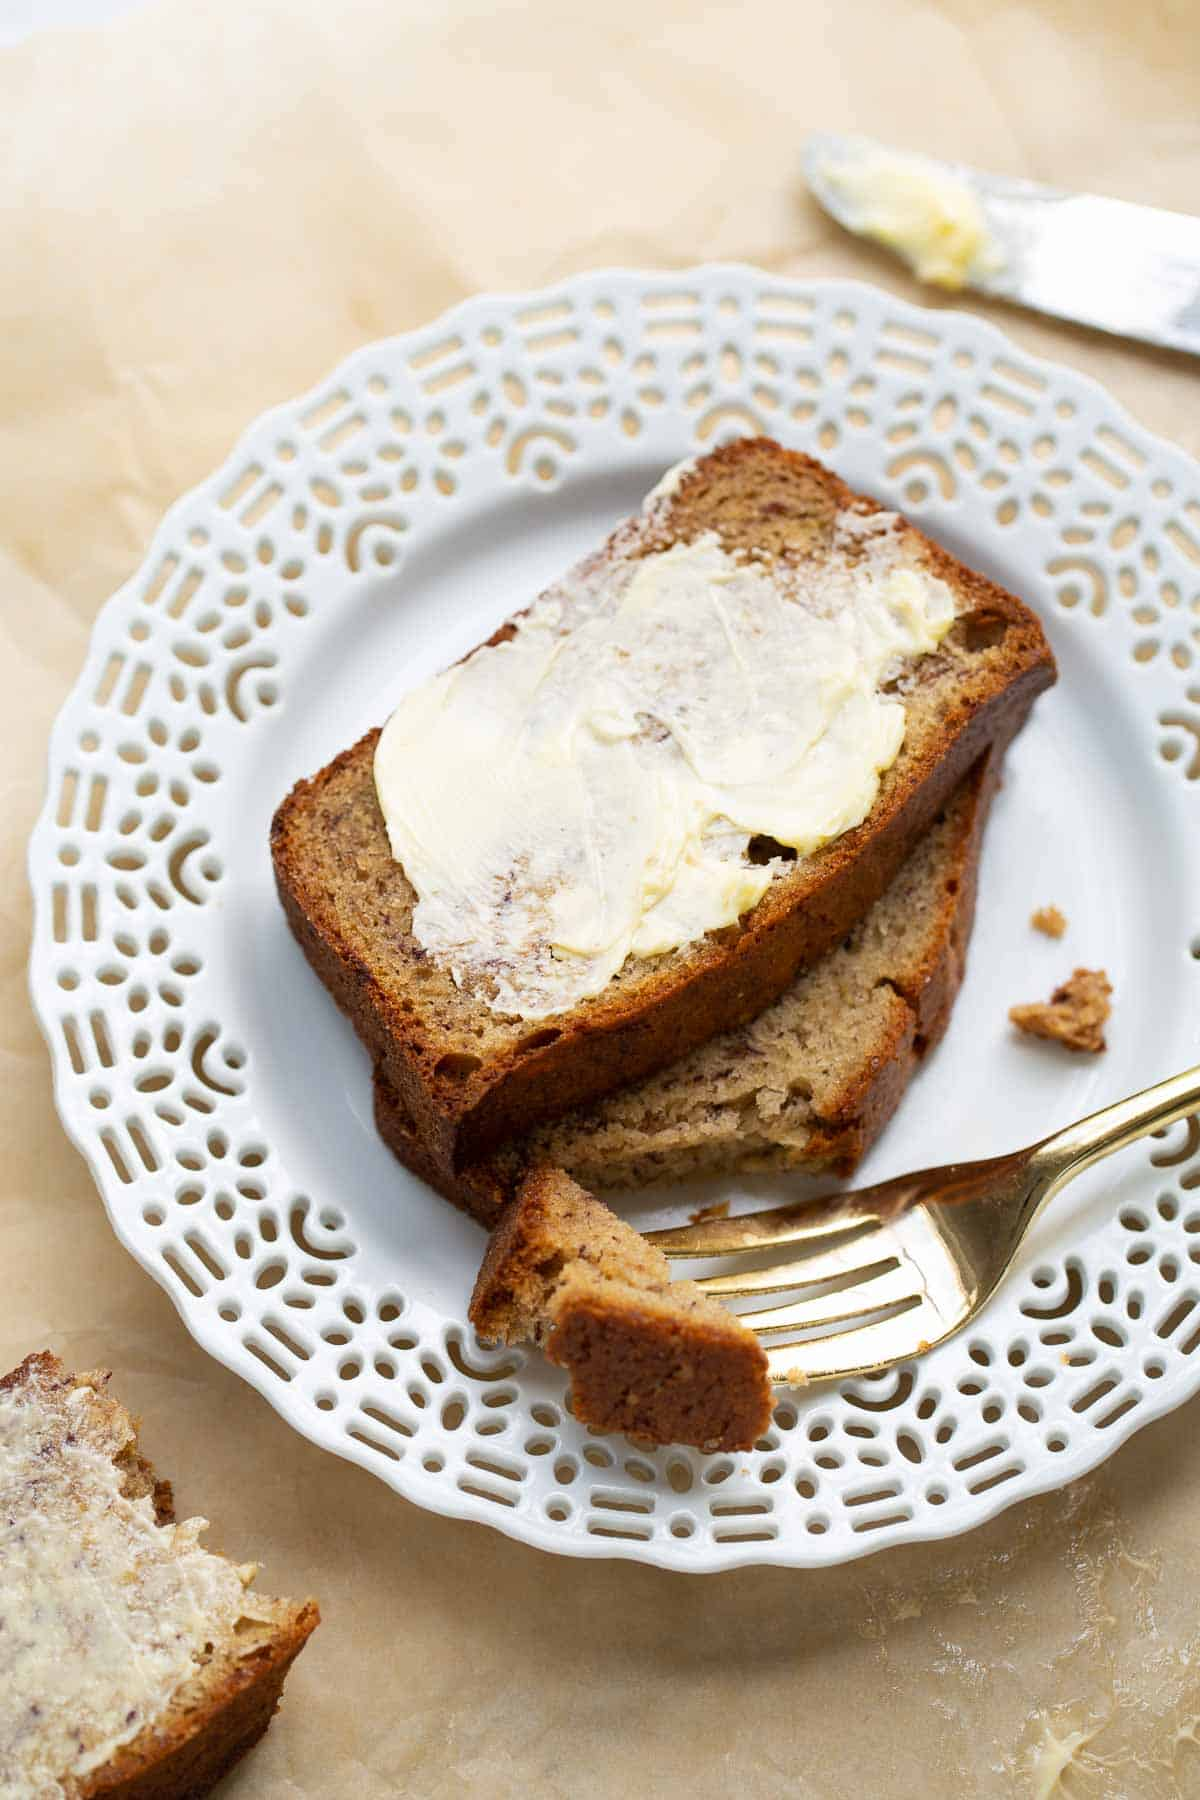 buttered banana bread on plate with fork taking a bite